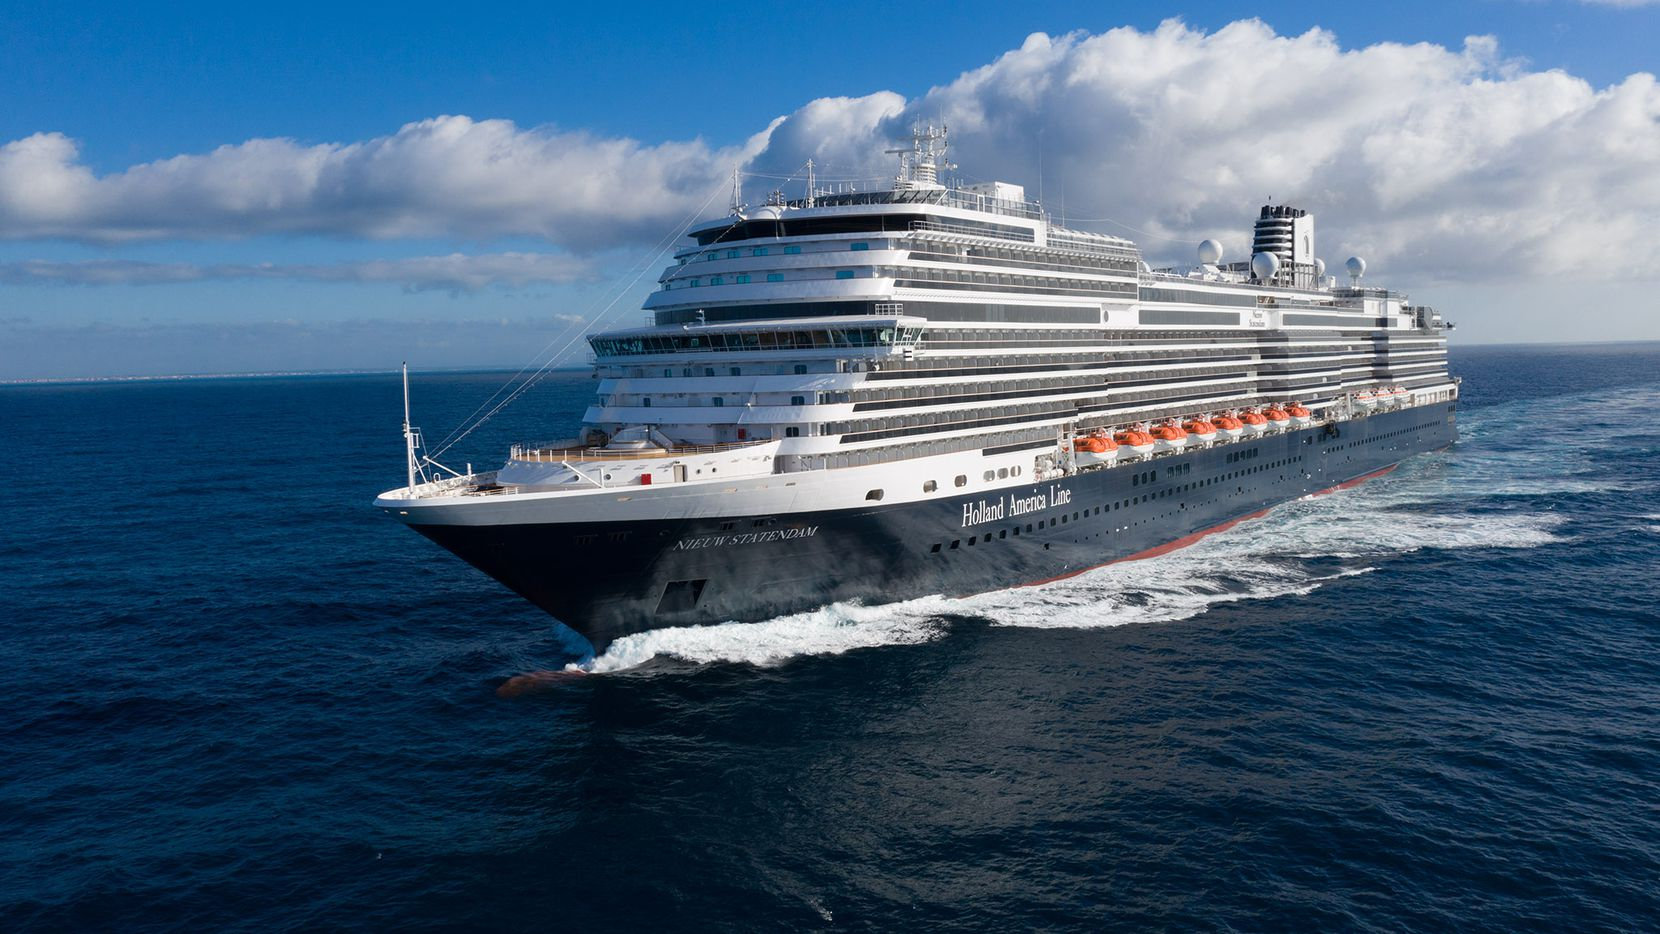 The Nieuw Statendam made its first journey across the Atlantic in December and now operates from Fort Lauderdale, Fla.